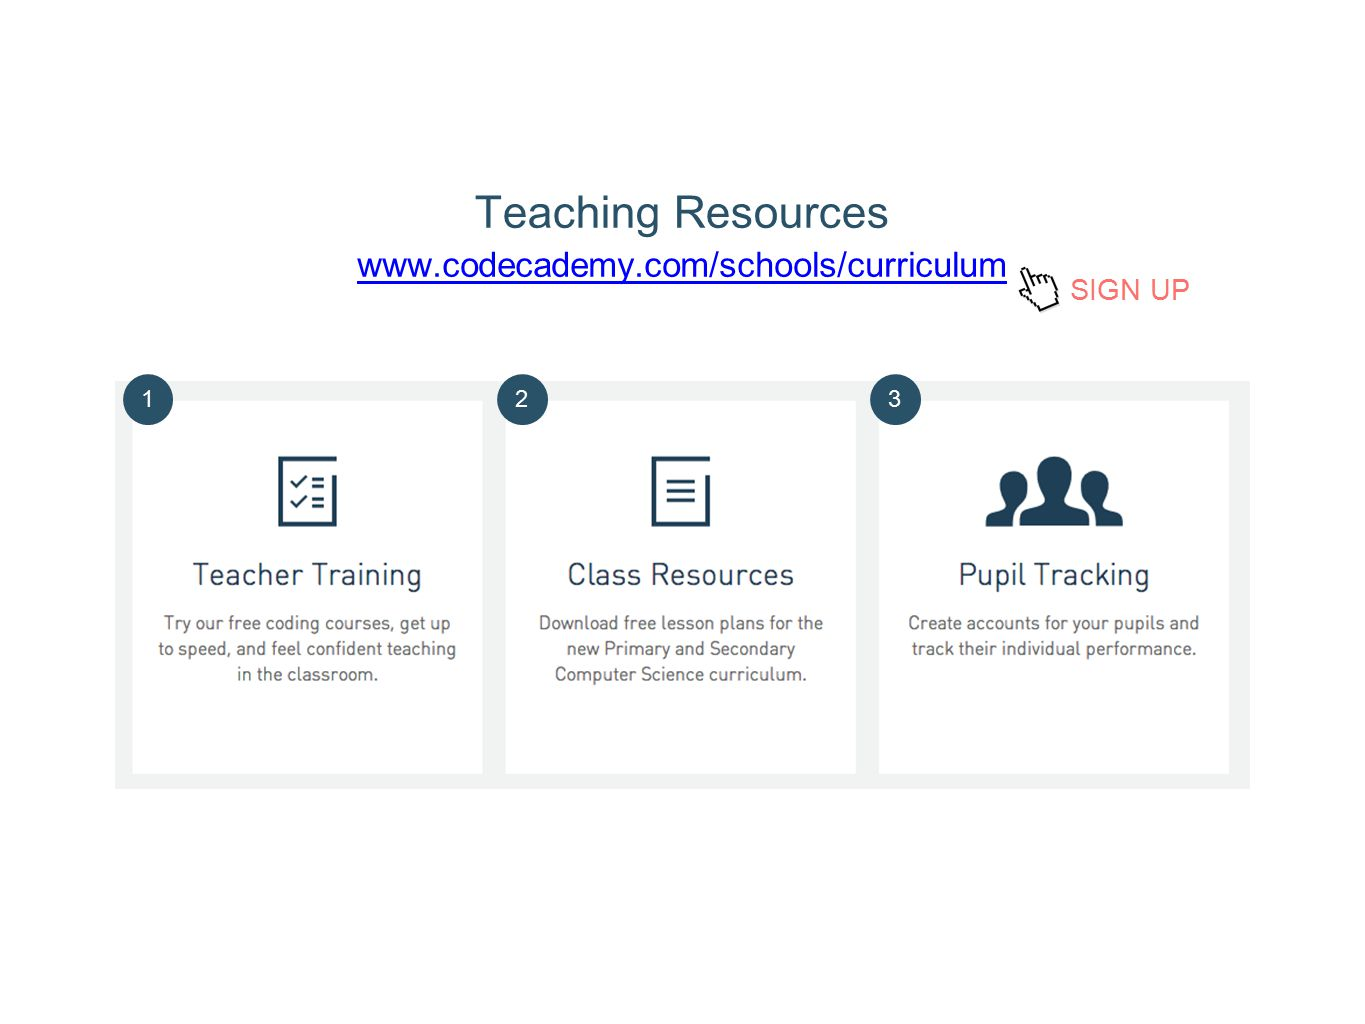 Teaching Resources www.codecademy.com/schools/curriculum SIGN UP 1 2 3